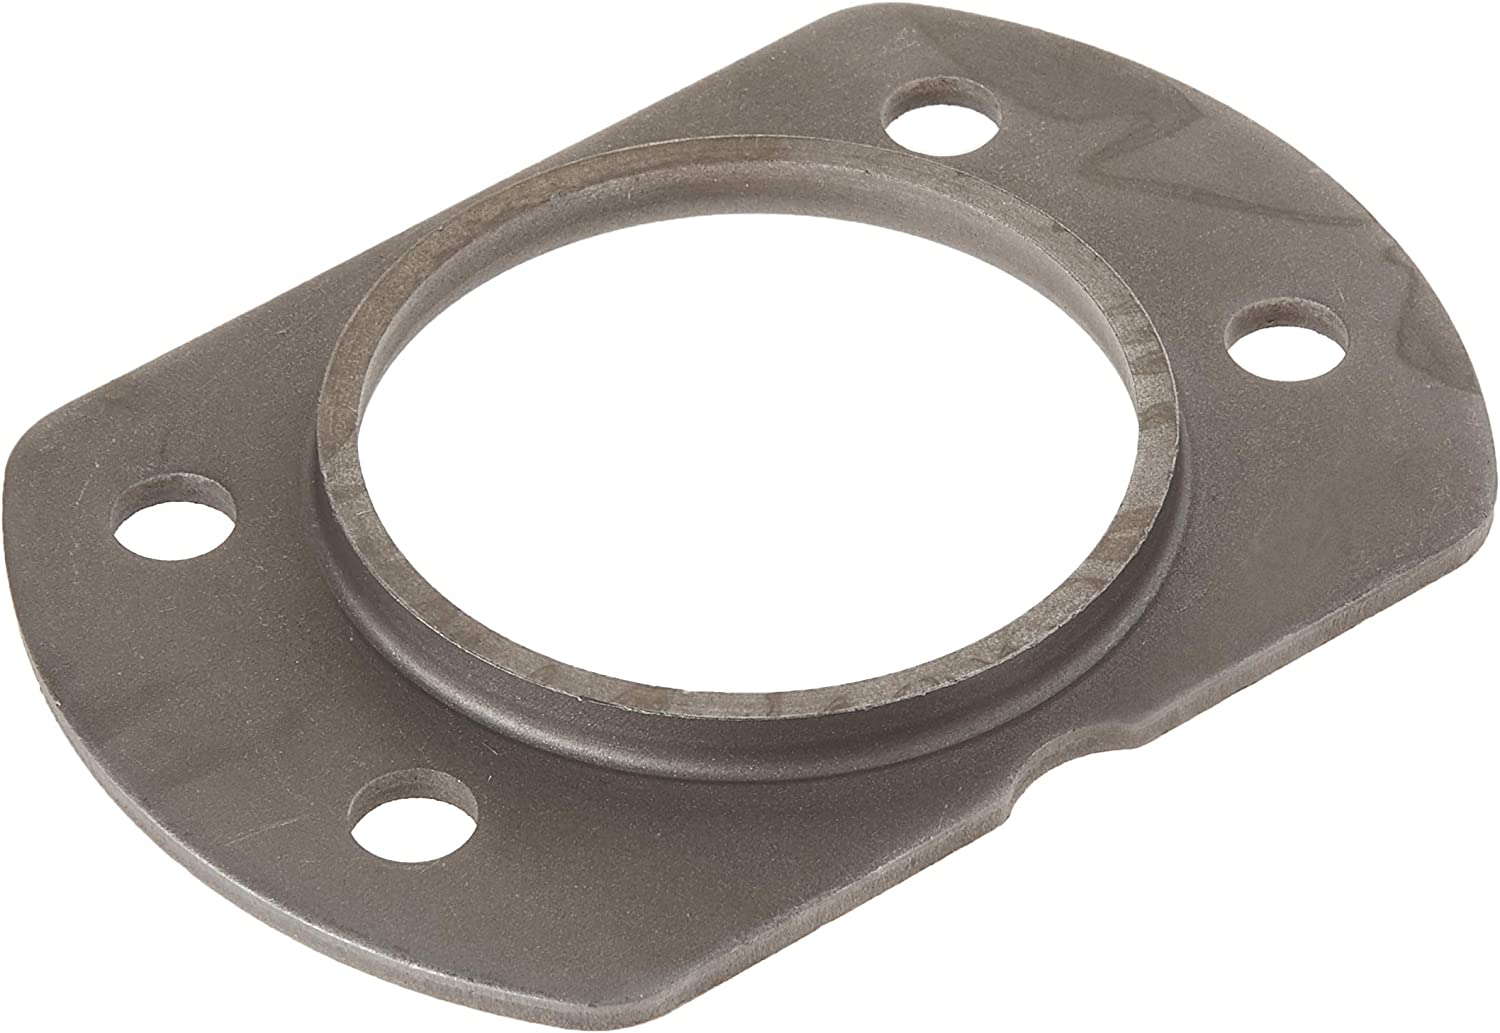 Crown Sale Automotive Axle Shaft Driveline Axles and 1 year warranty Retainer